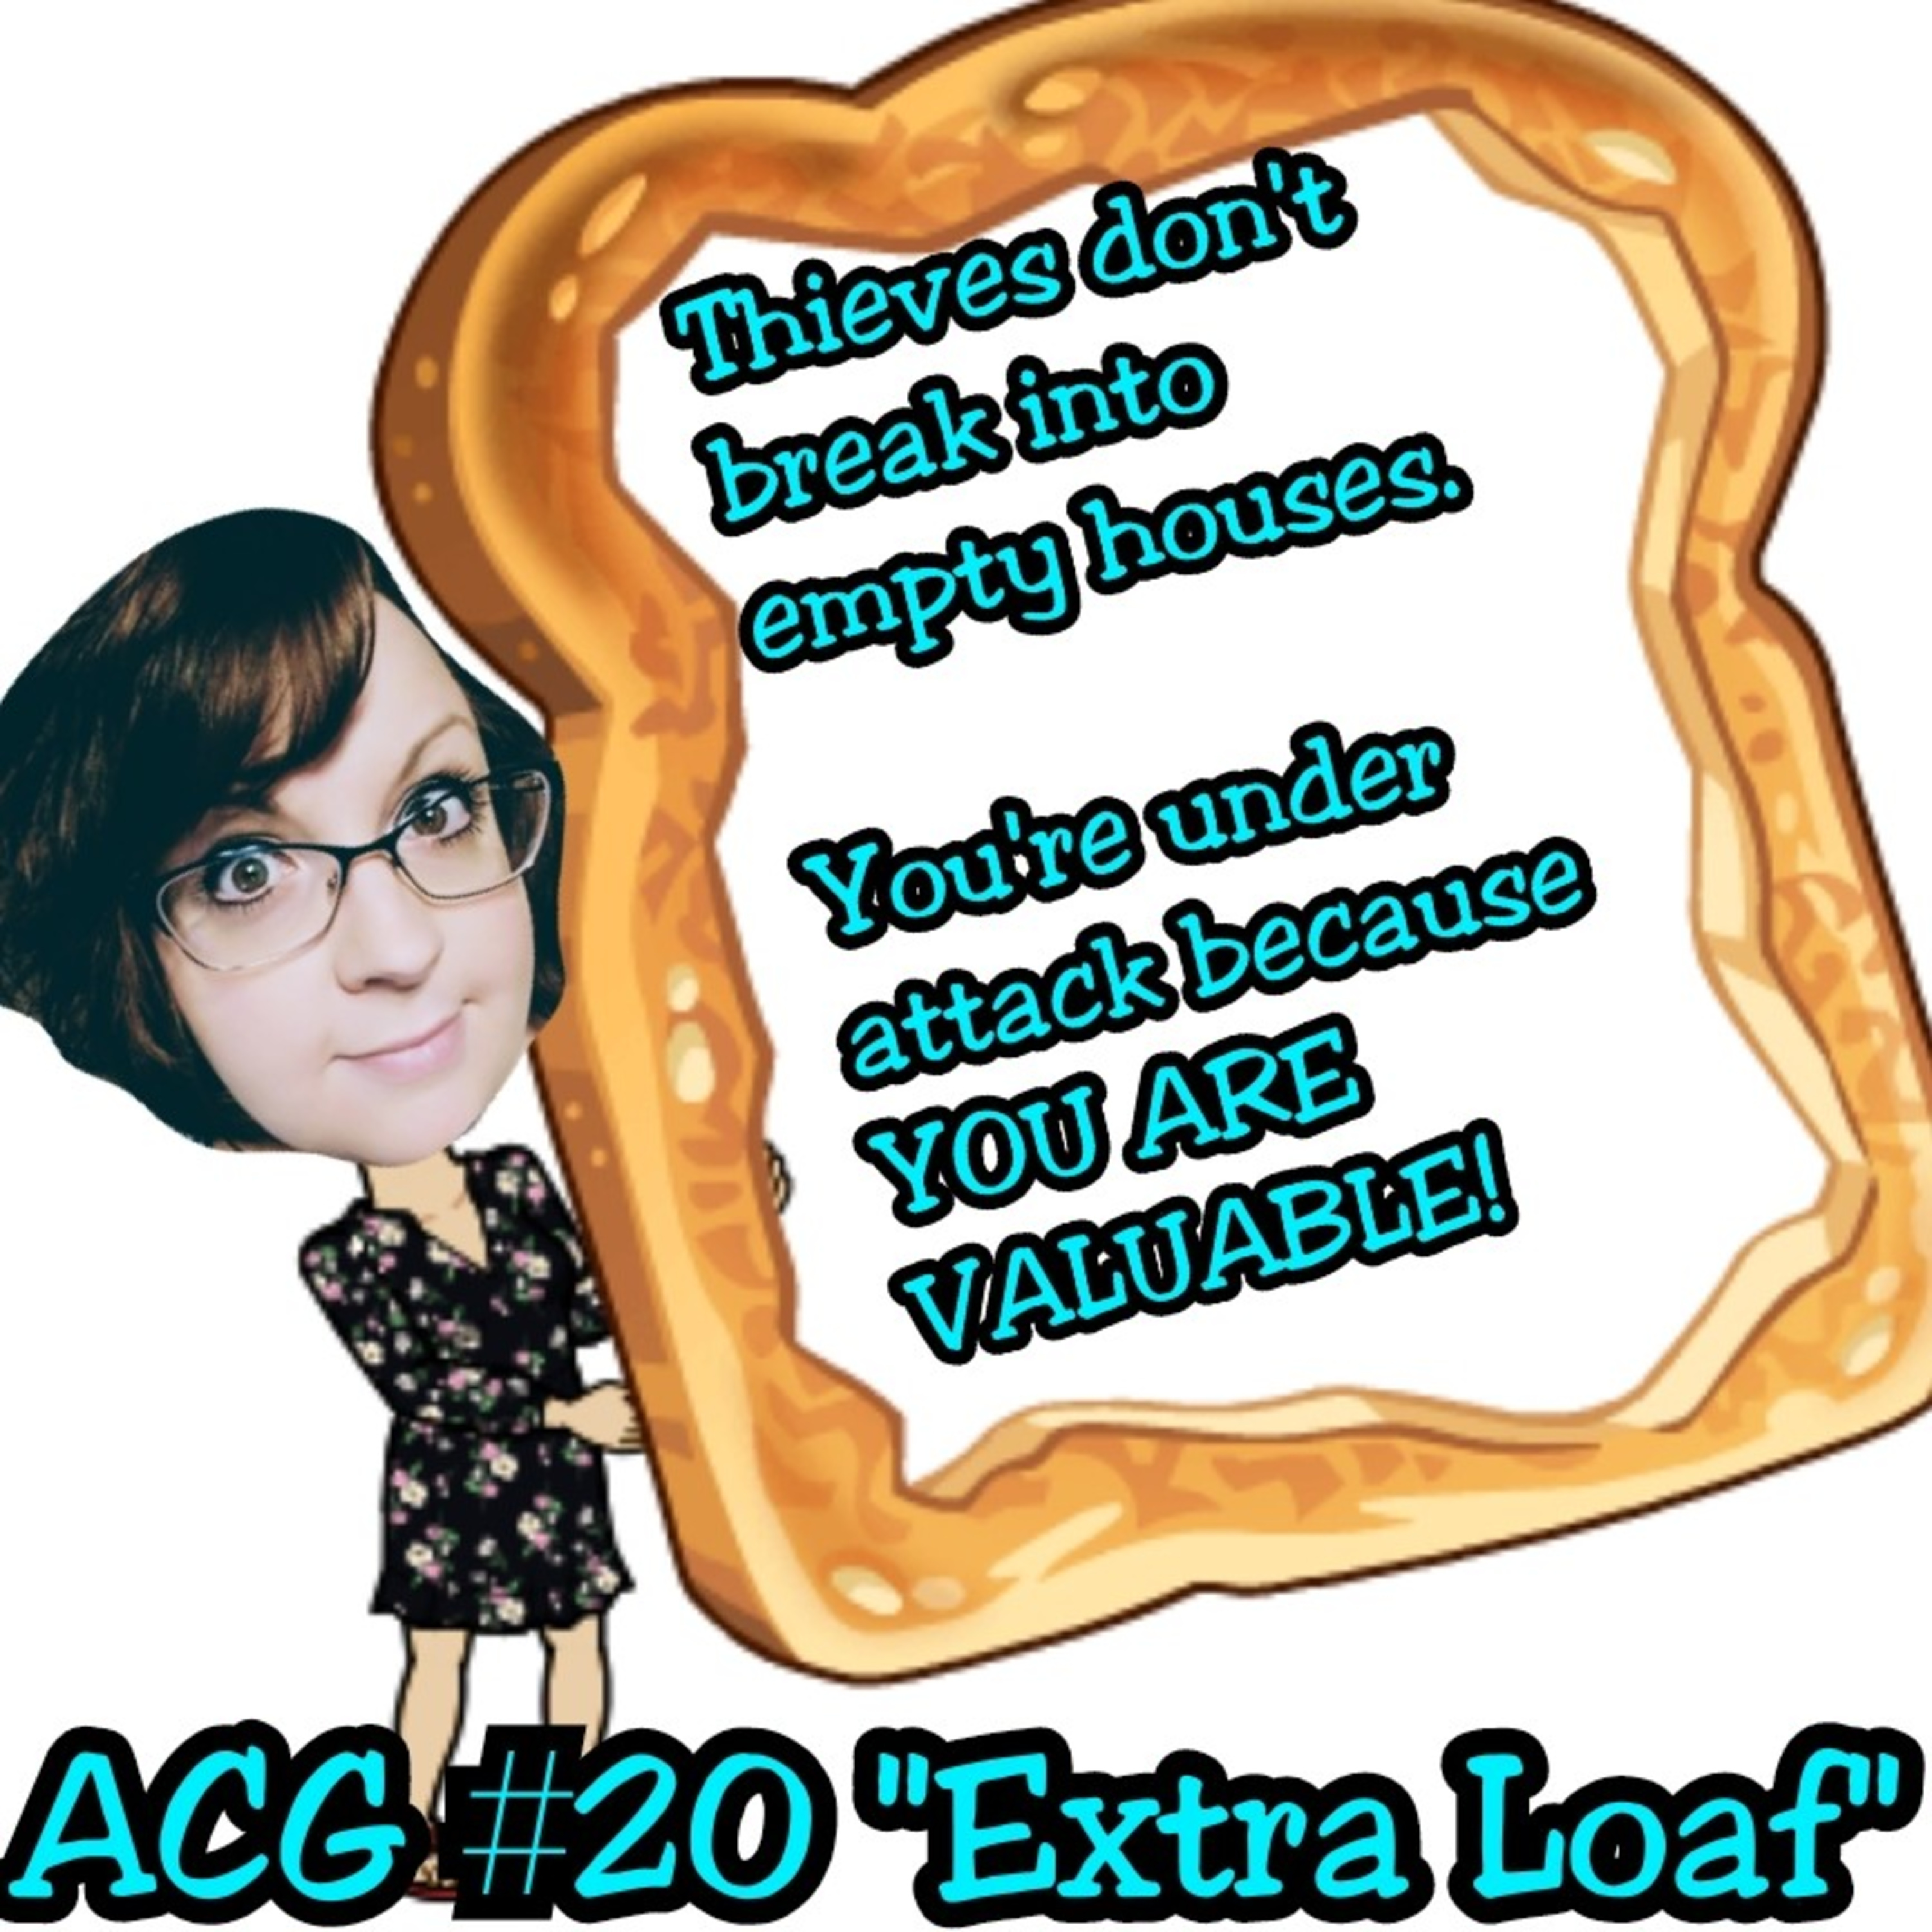 "ACG Podcast #20 ""Extra Loaf"" You're under attack because you're valuable!"